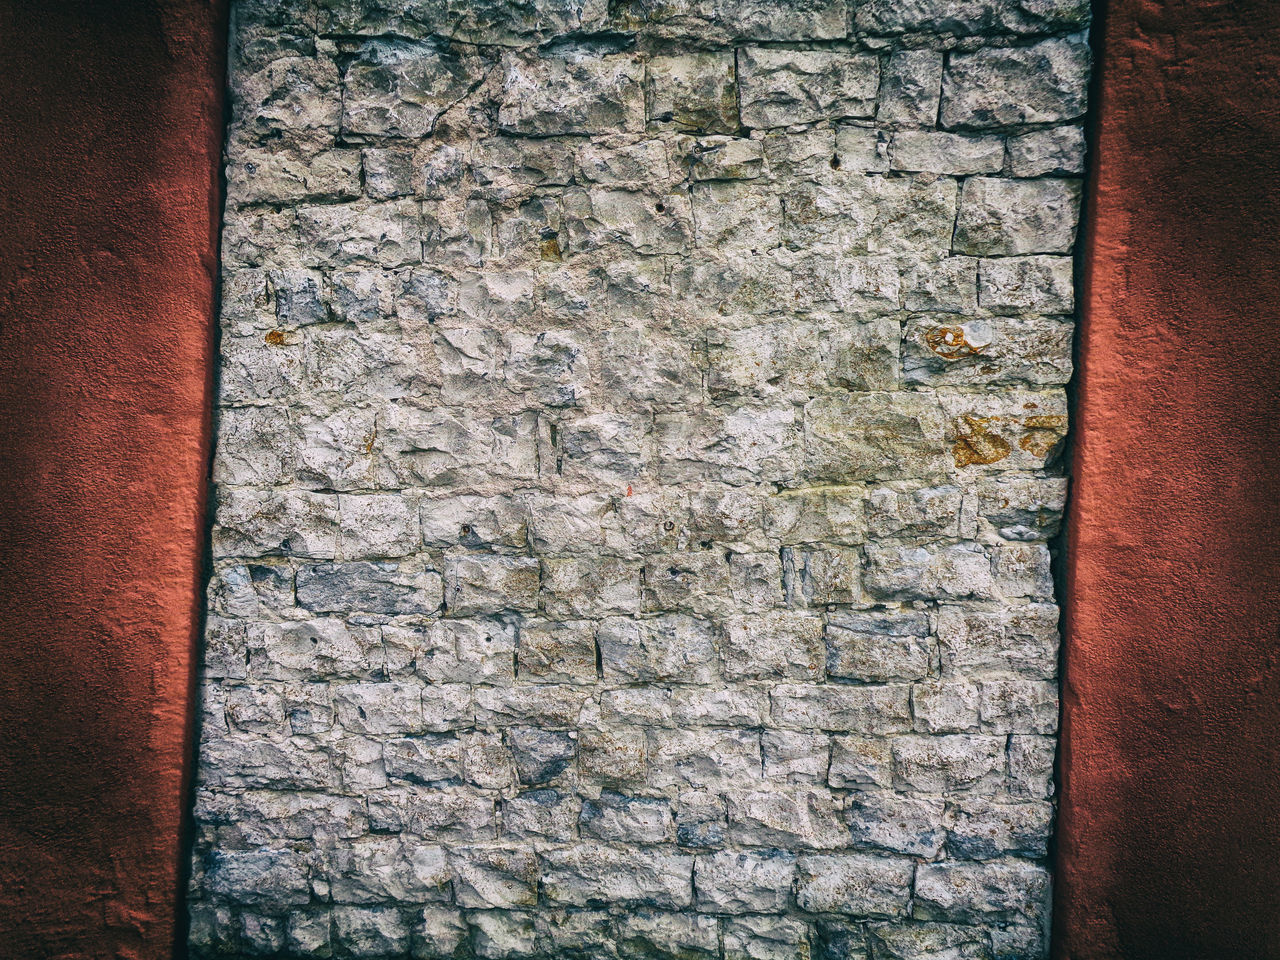 wall, no people, built structure, textured, day, architecture, wall - building feature, brick, brick wall, pattern, close-up, outdoors, building exterior, old, backgrounds, full frame, stone wall, weathered, wood - material